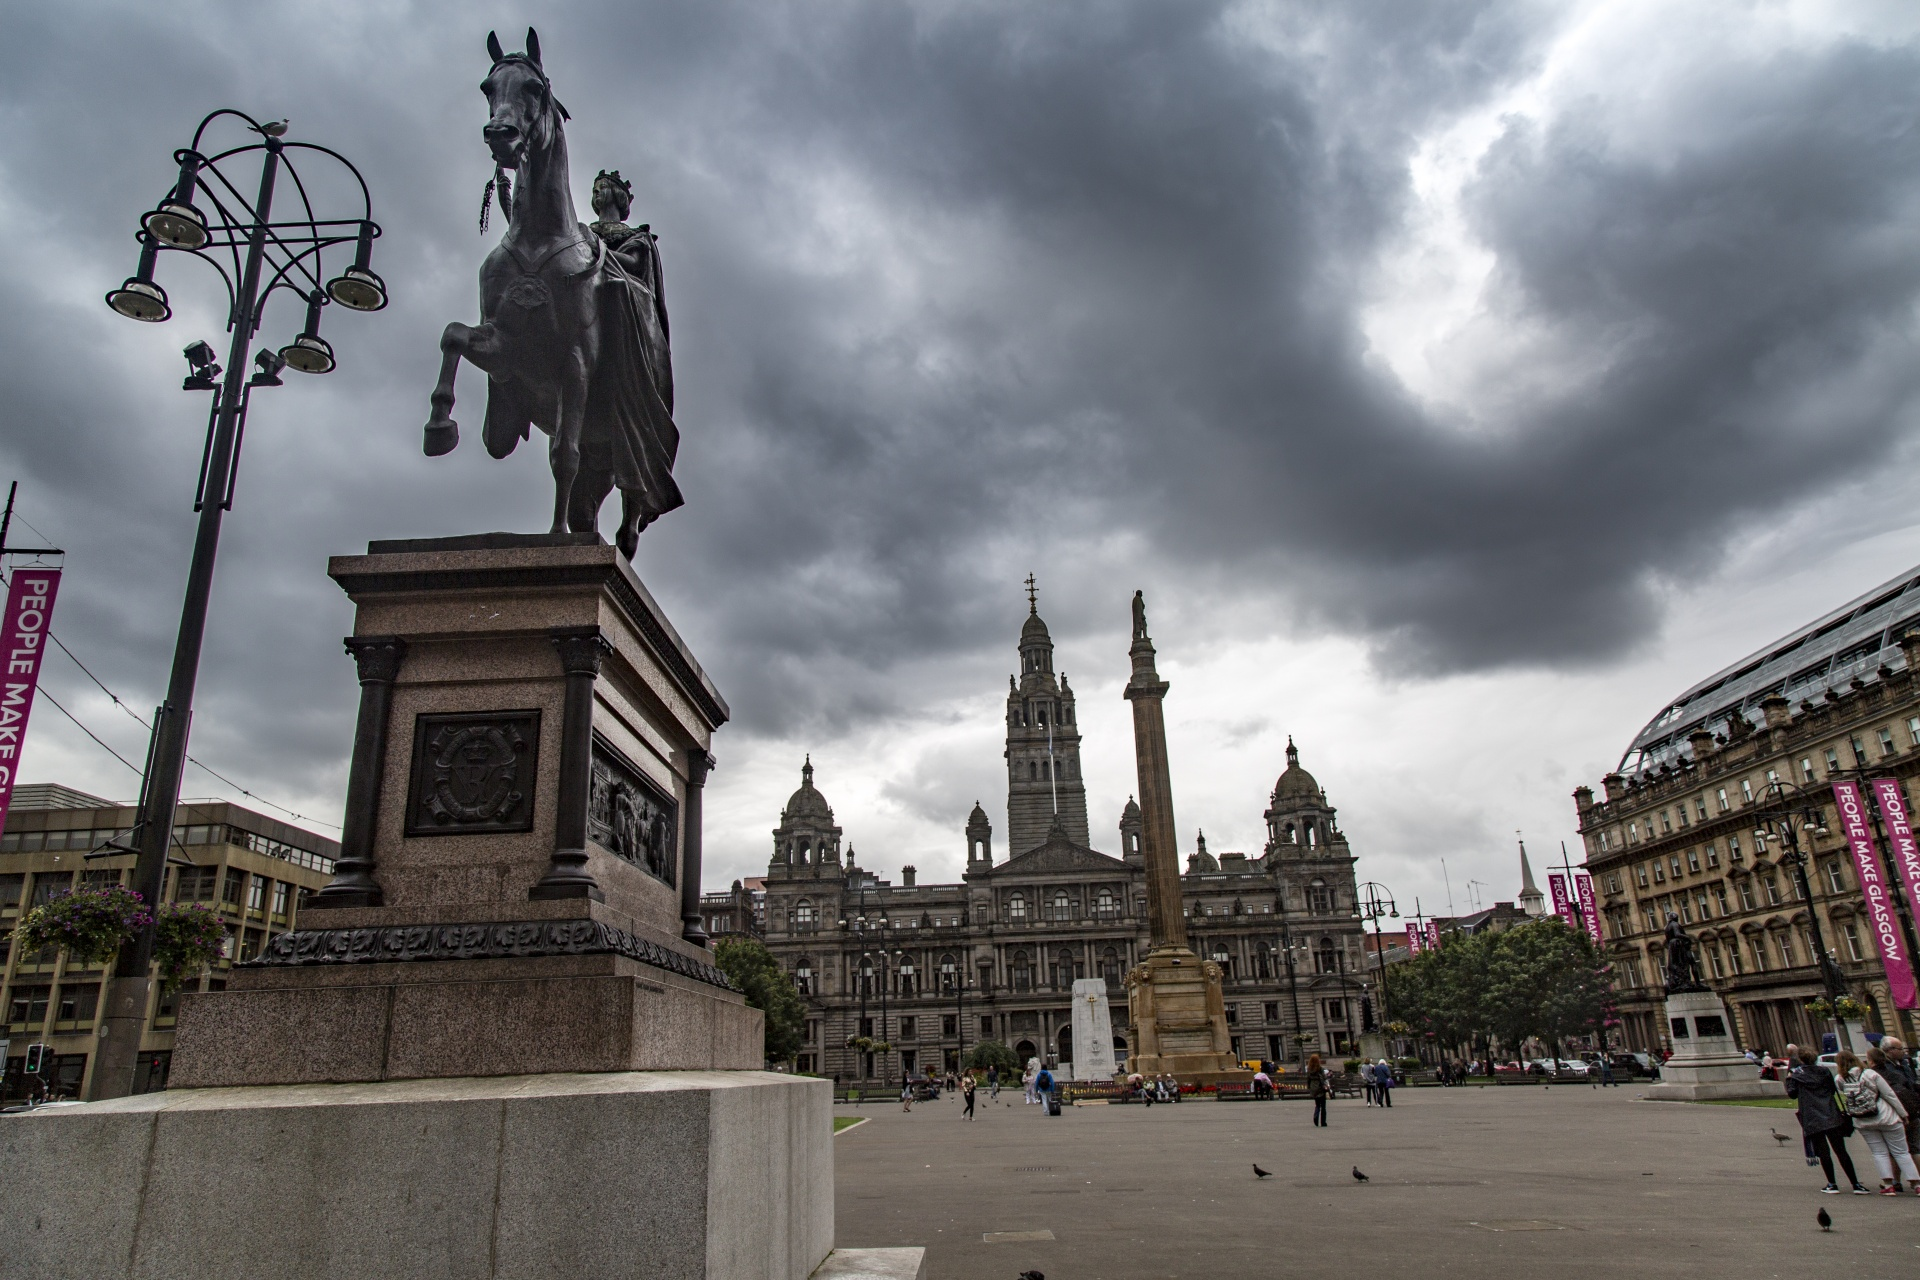 glasgow city in scotland 1474099021aJm Visit Glasgow in 2021 For Your Love Of Art